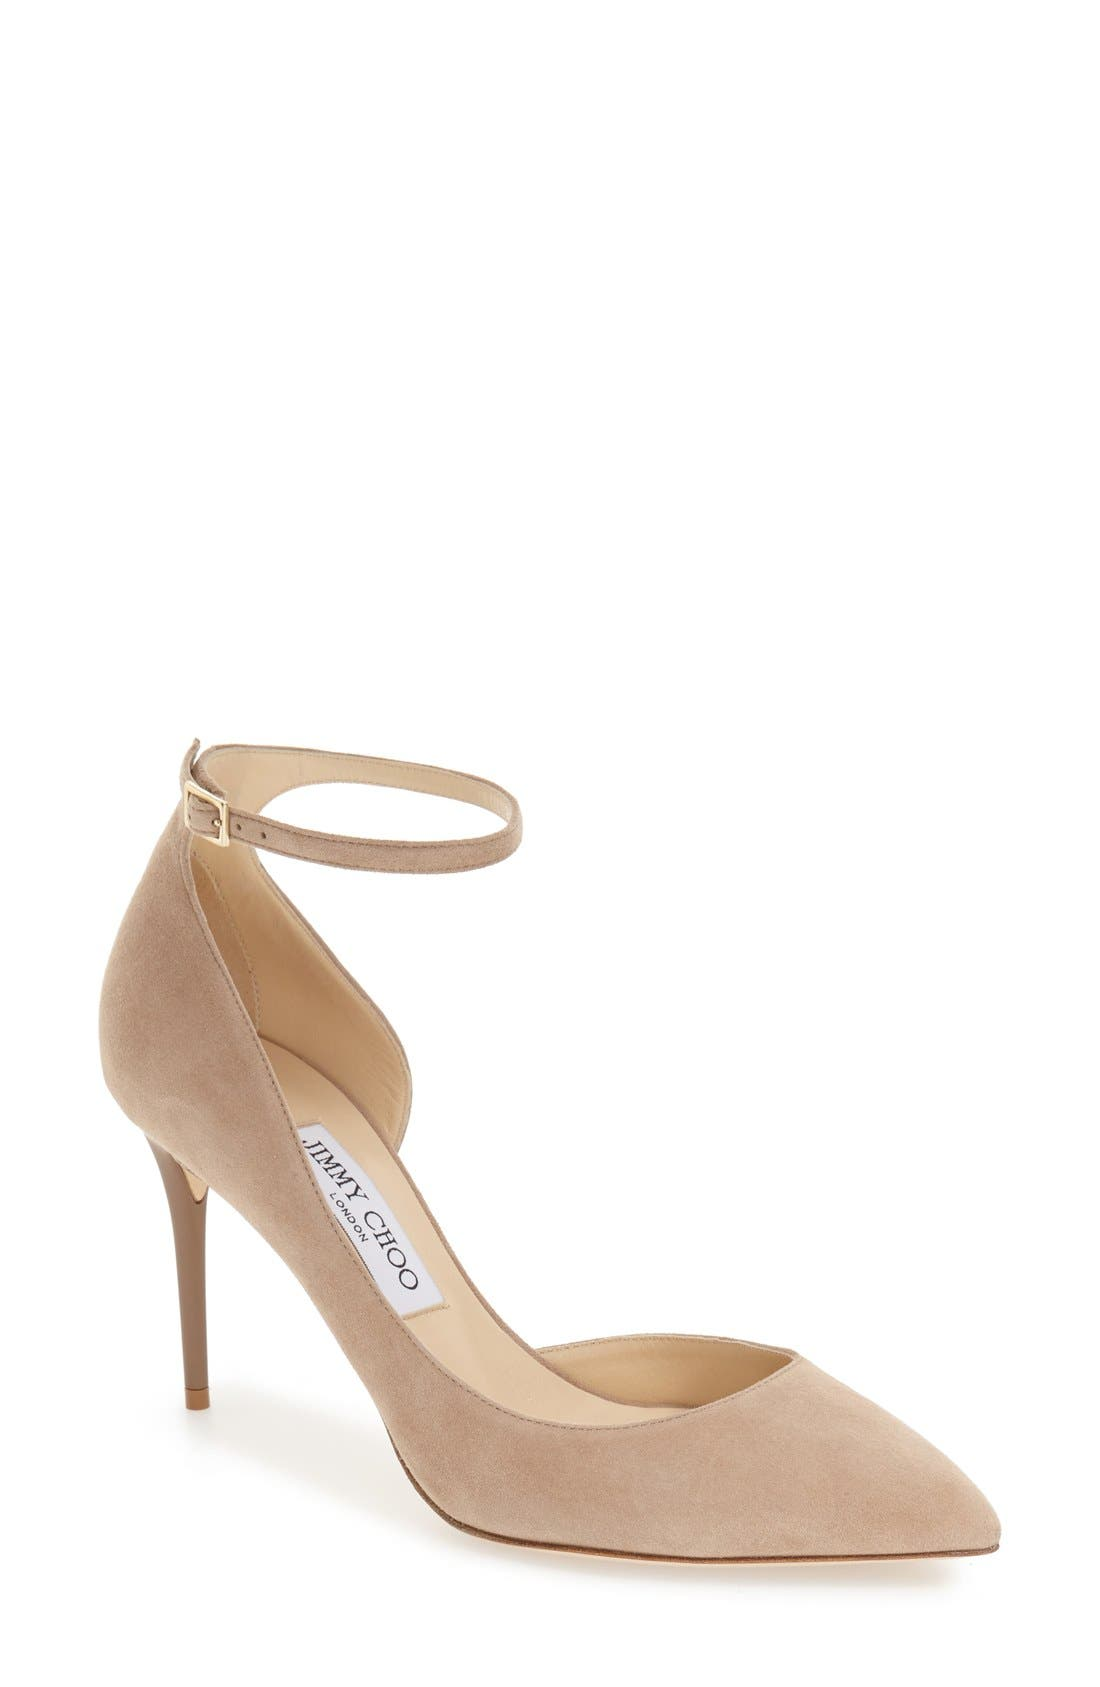 Jimmy Choo 'Lucy' Half d'Orsay Pointy Toe Pump (Women)